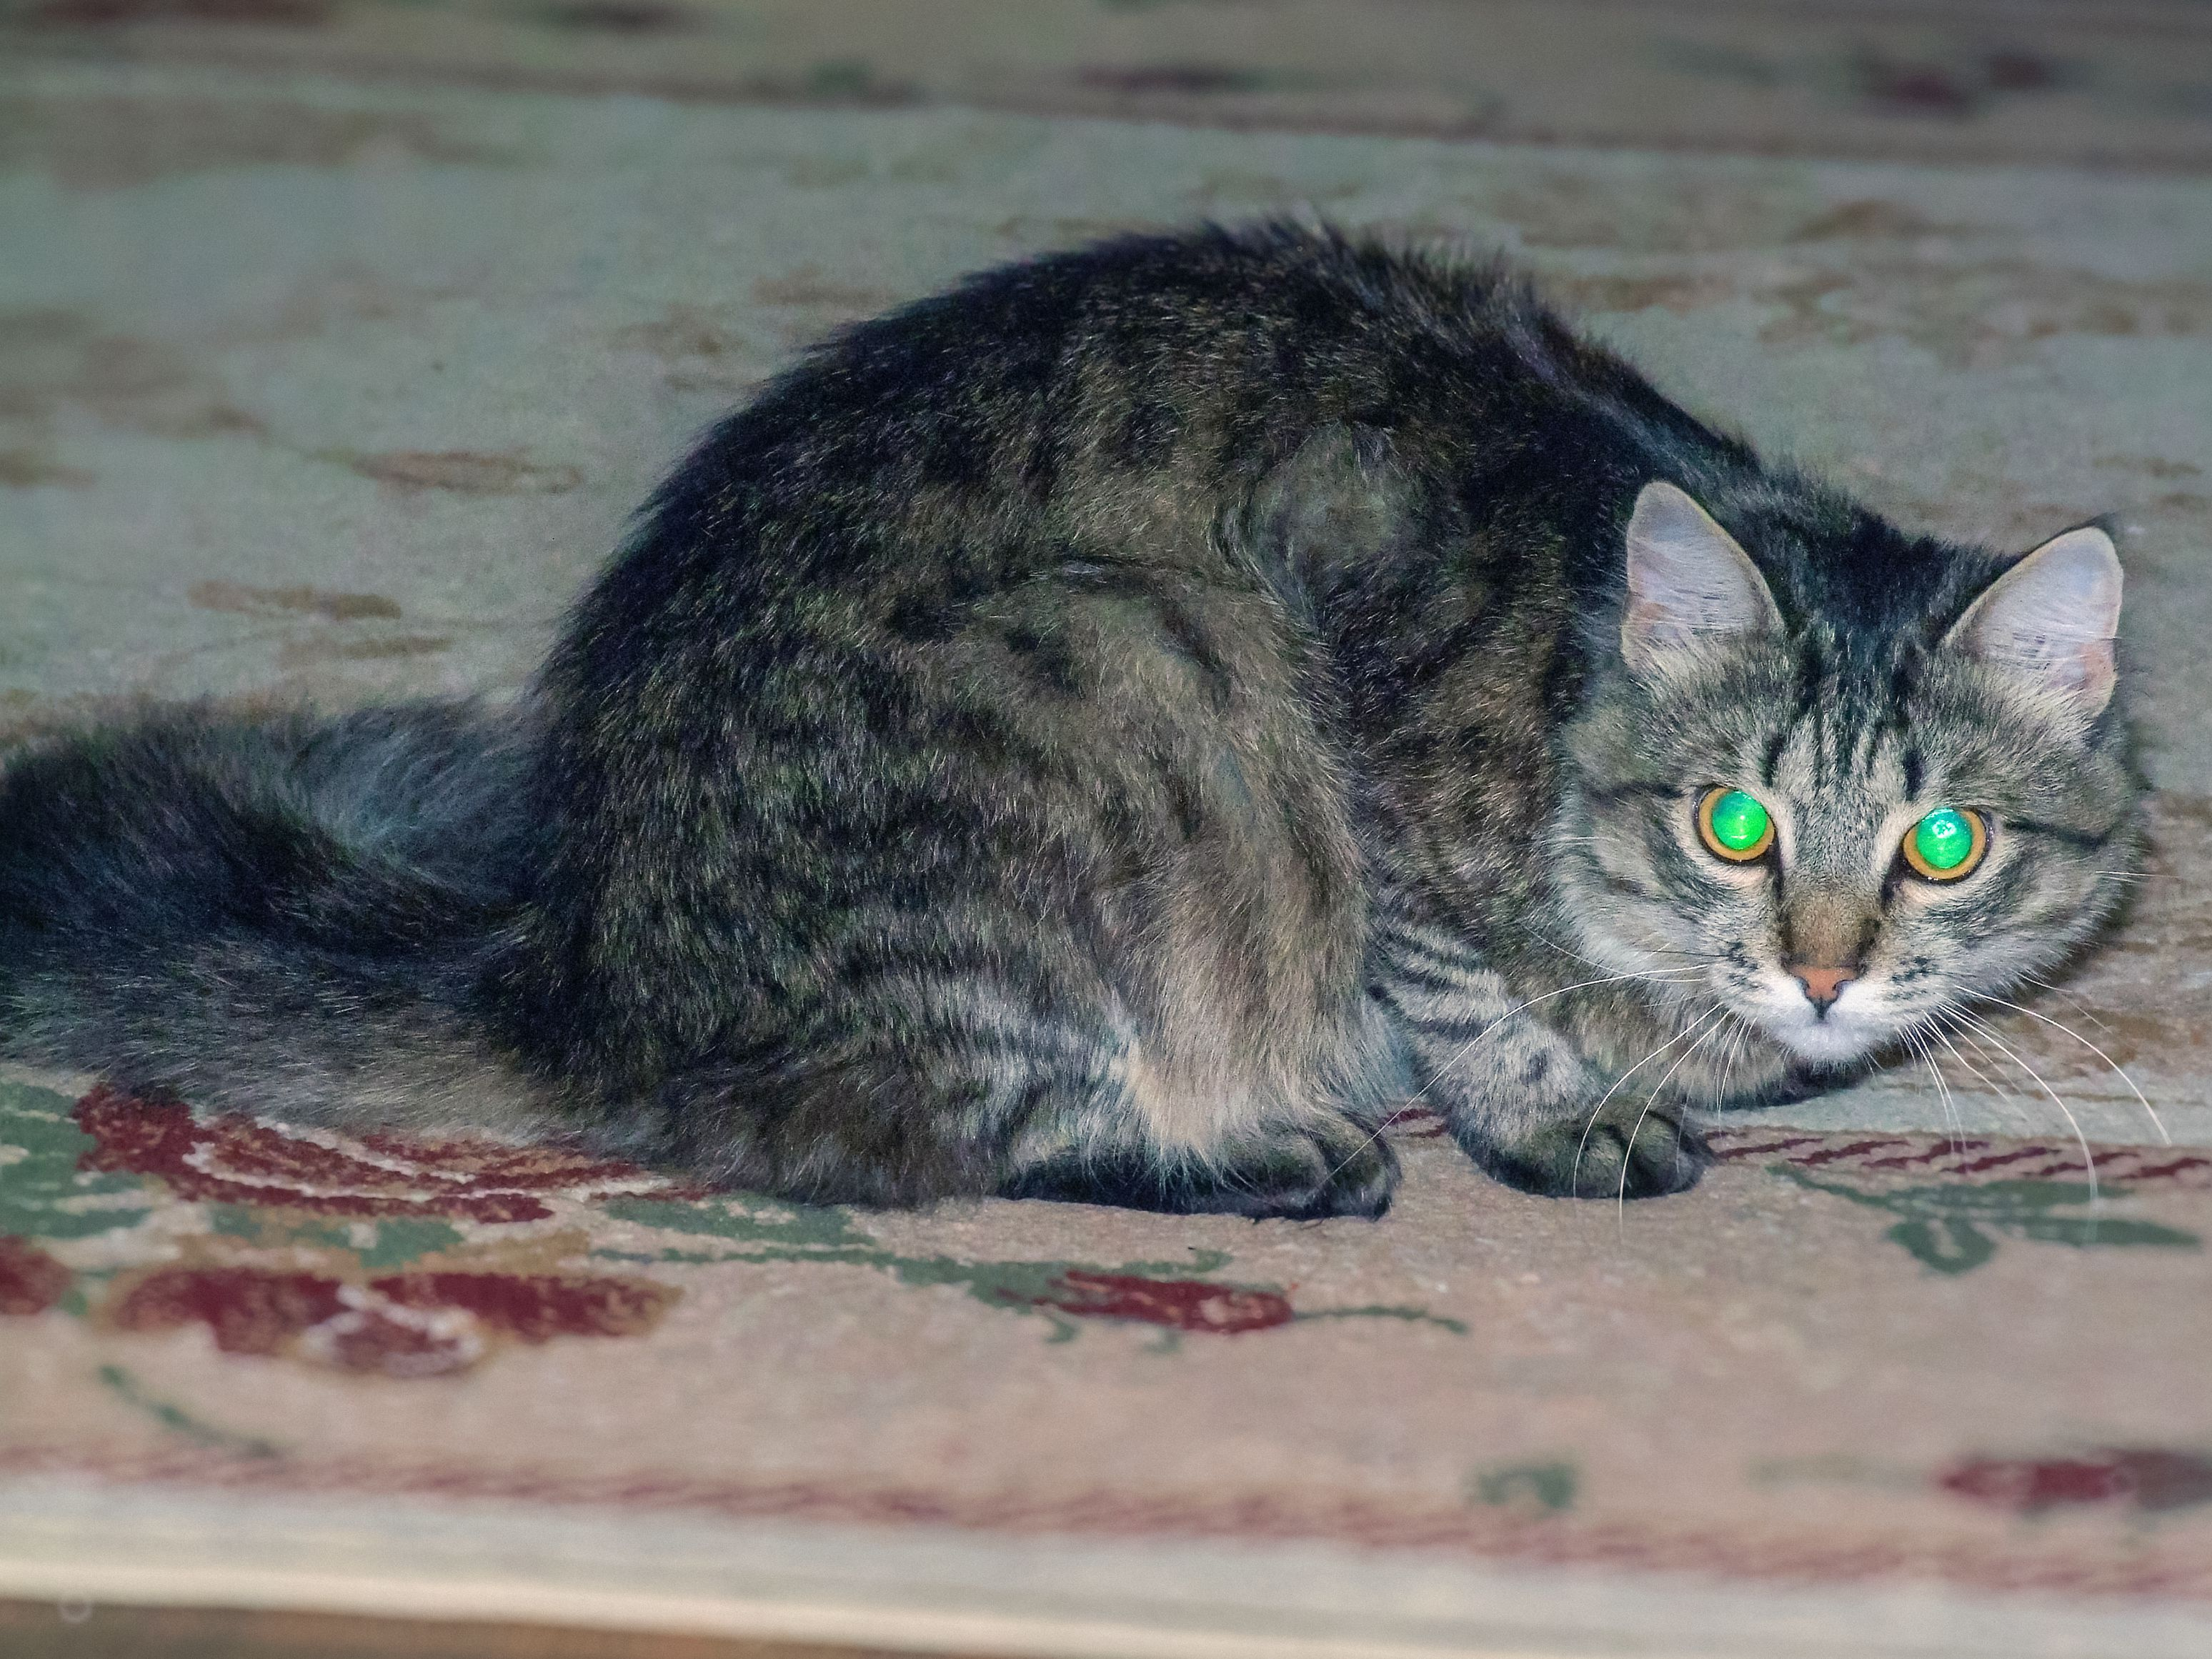 The tapetum lucidum of a cat's eyes reflects light back toward the retina (or camera).